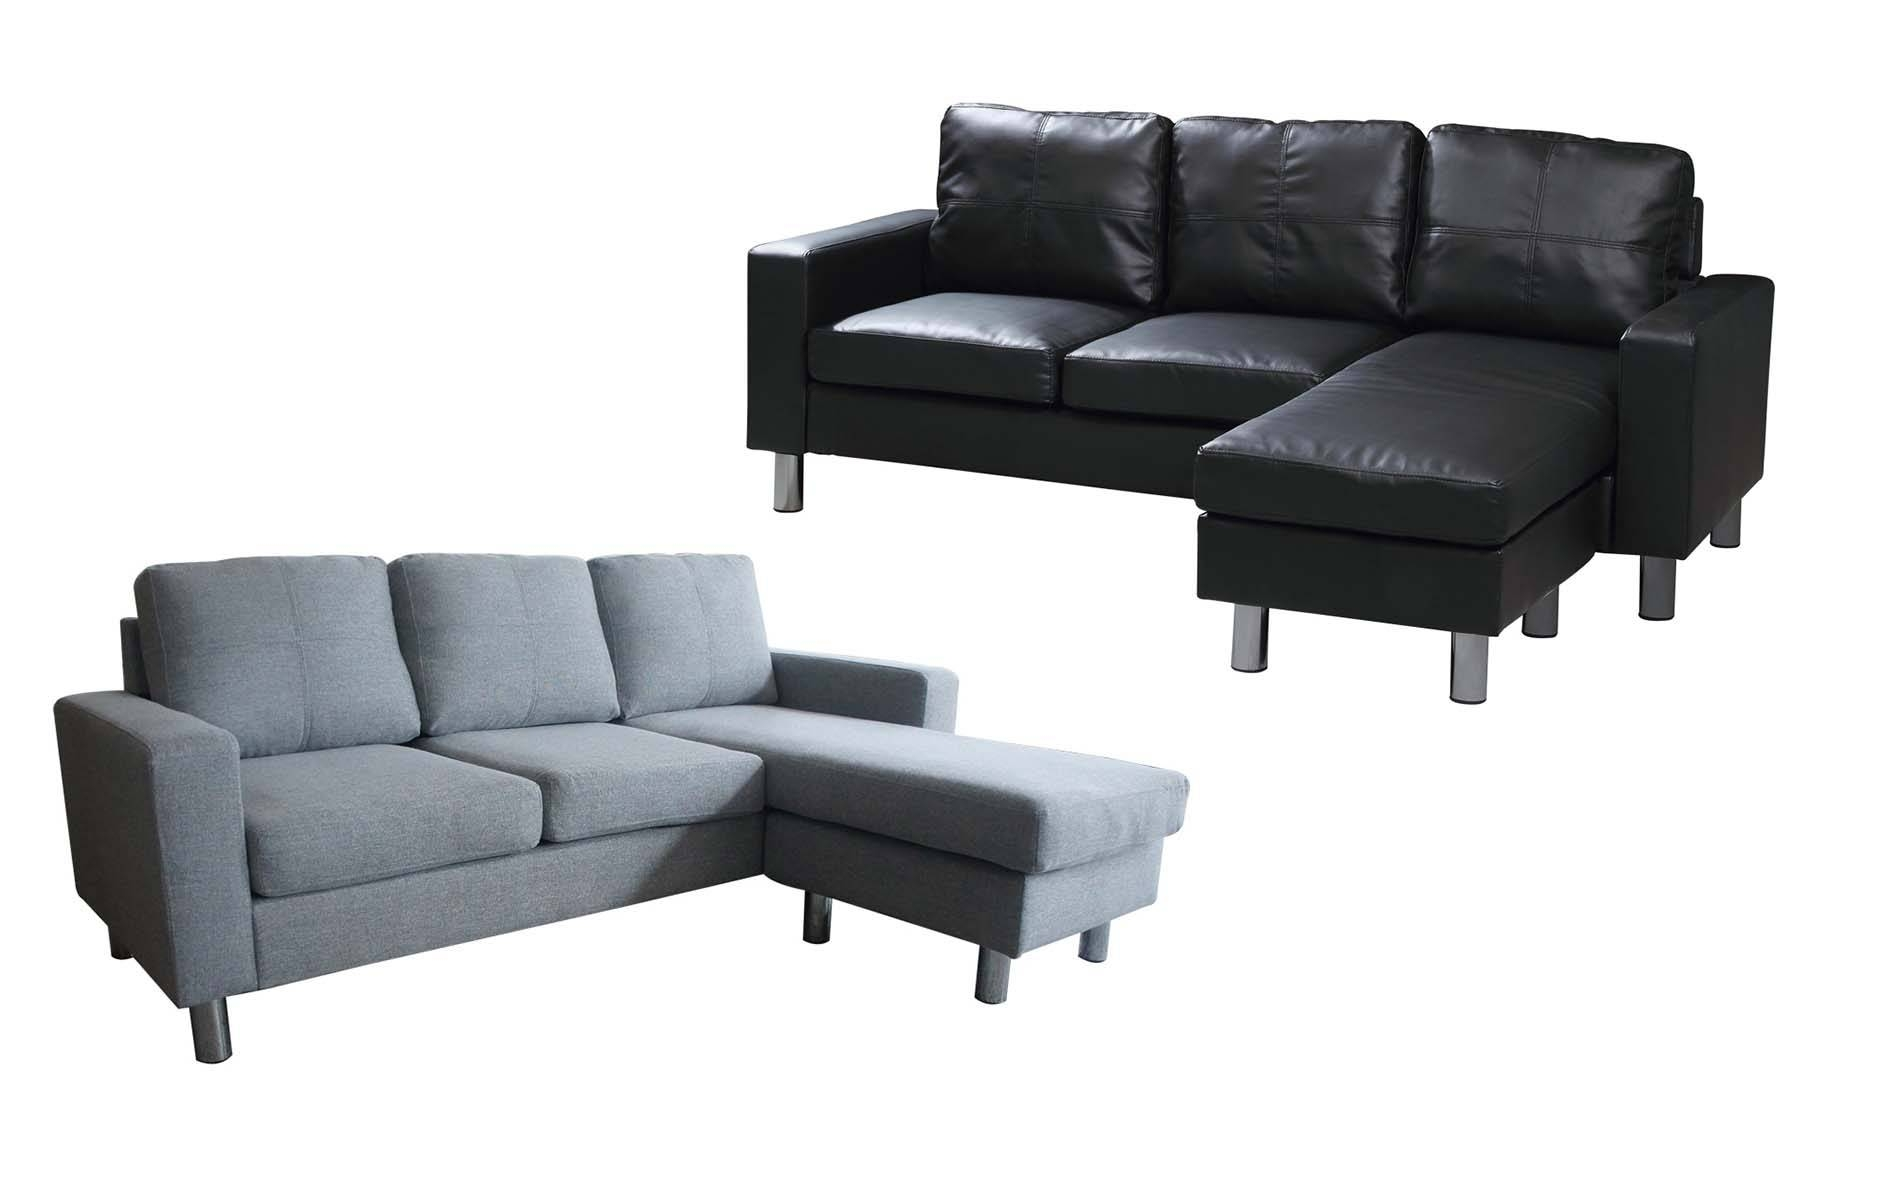 3 Seater L Shaped Corner Sectional Sofa Couch Grey Fabric Black within L Shaped Fabric Sofas (Image 2 of 30)